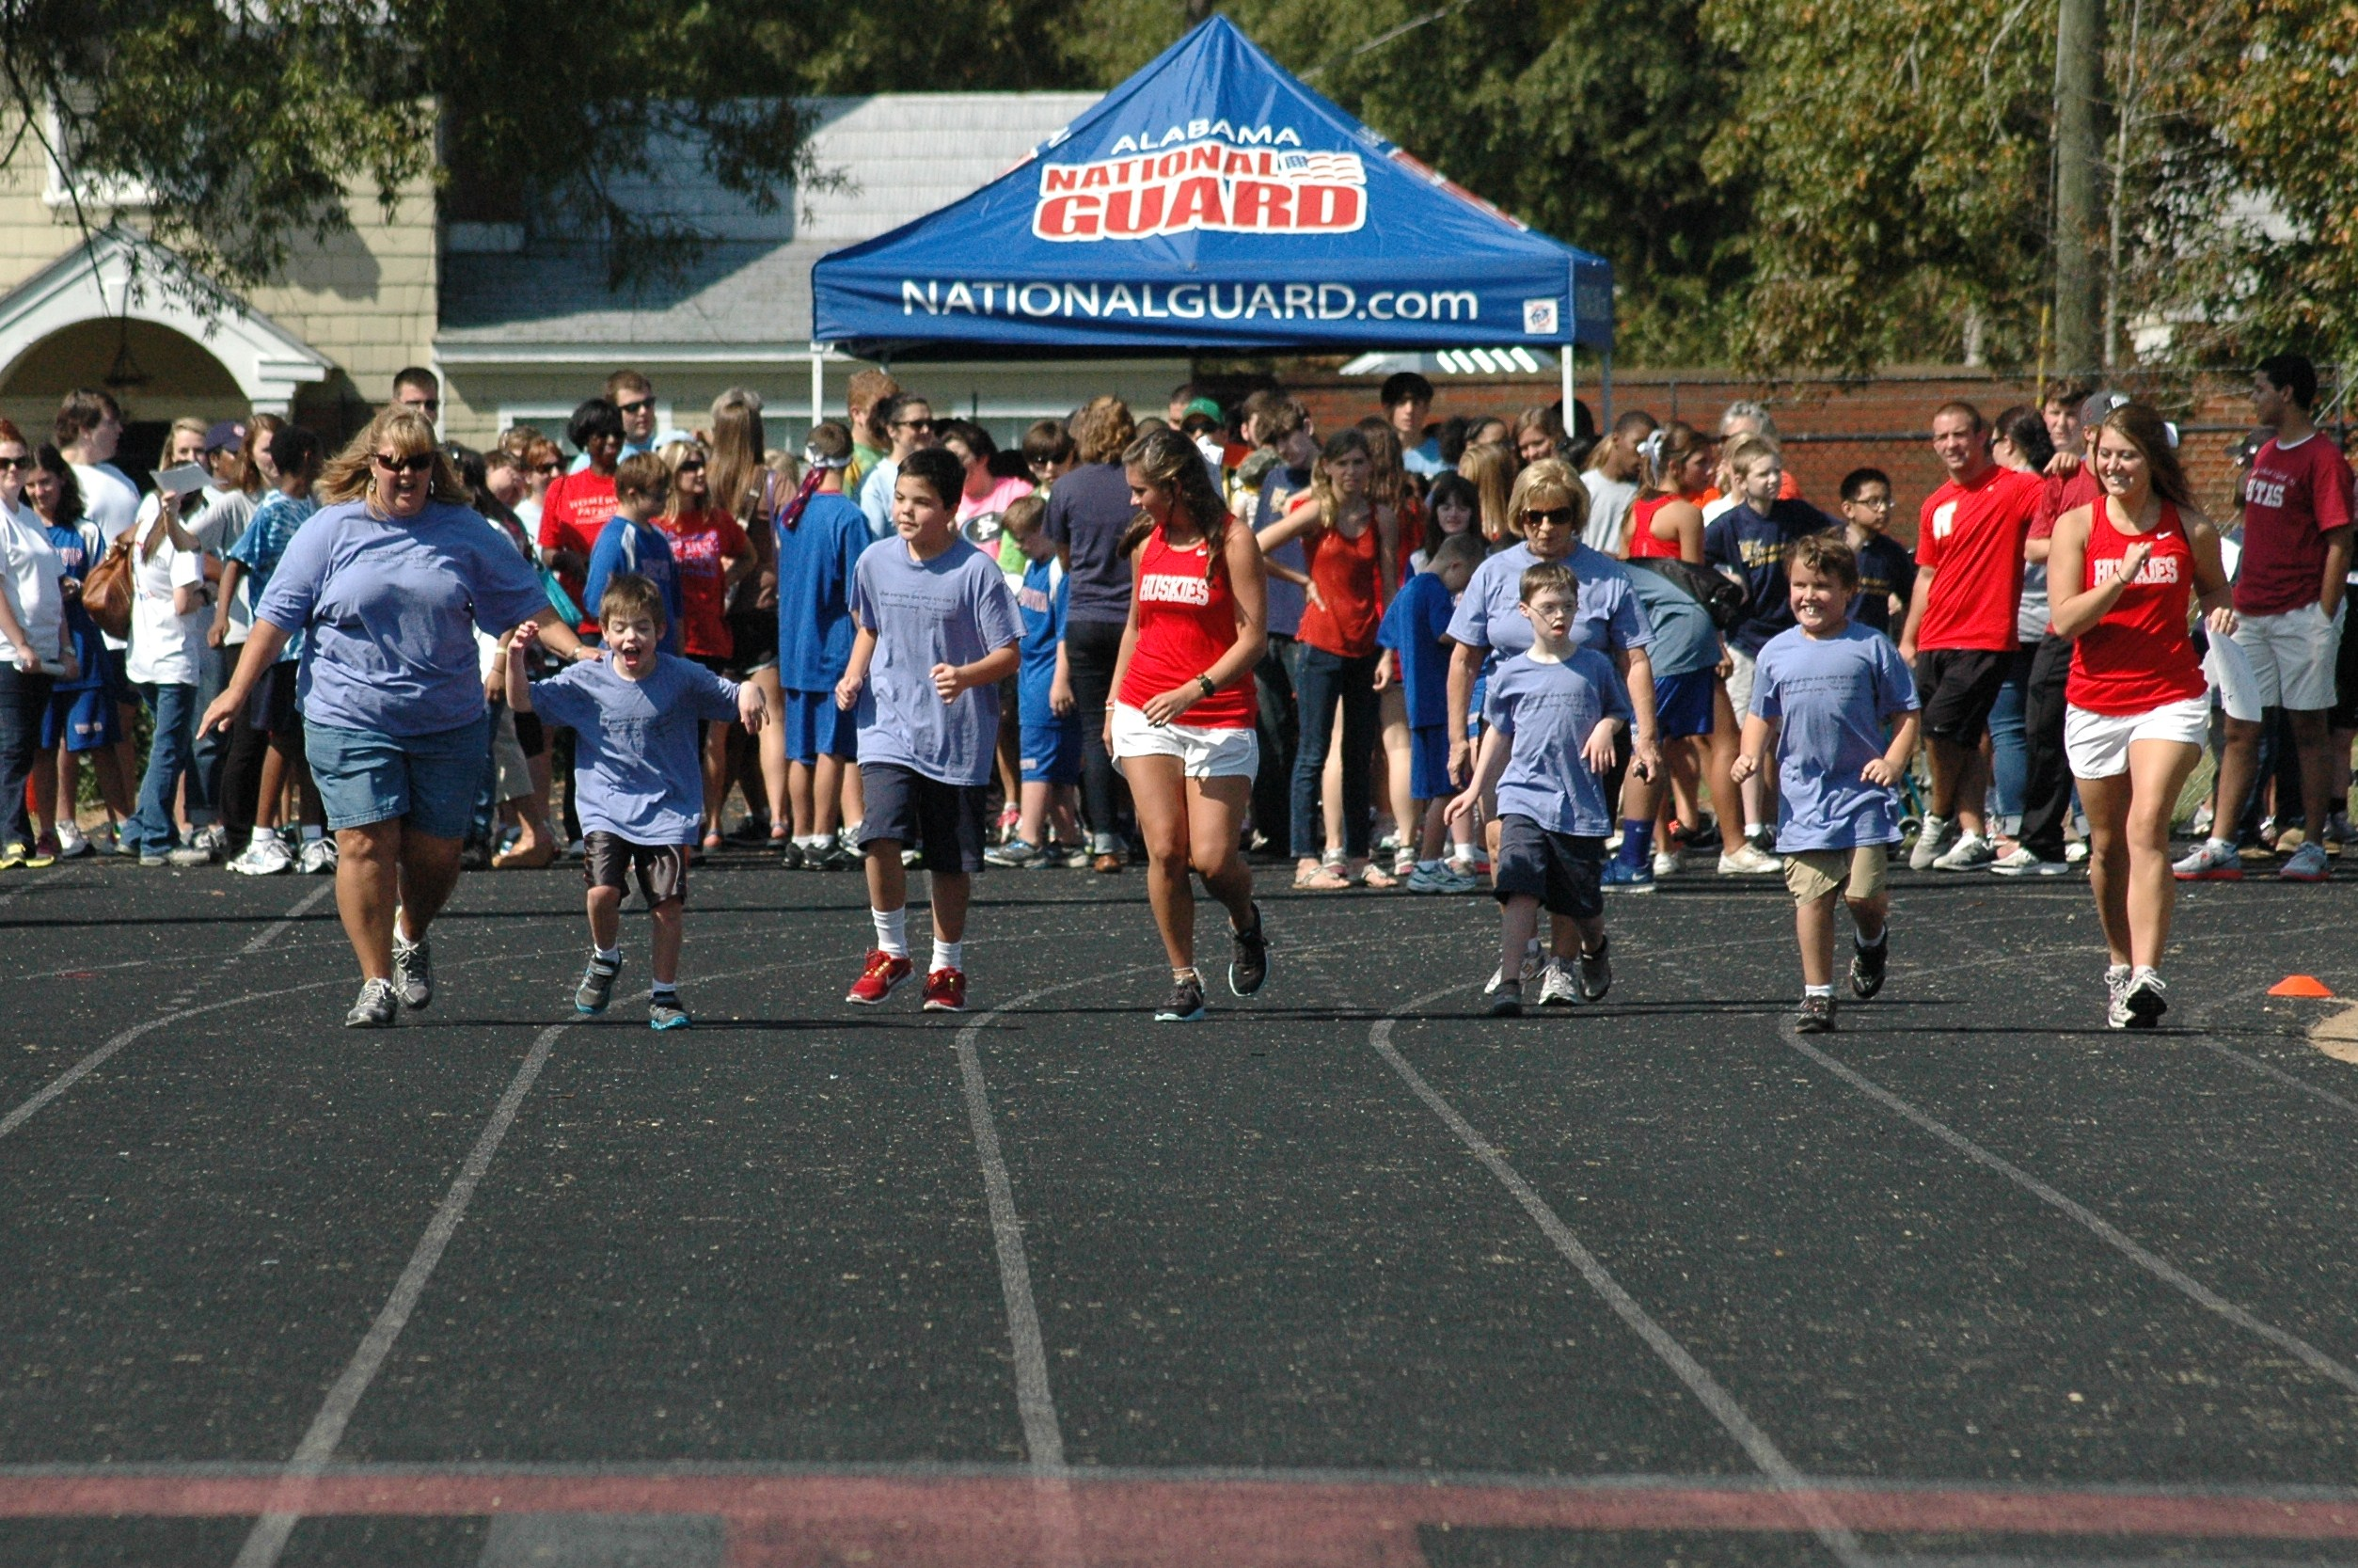 Special Olympics promotes community, teaching and tolerance